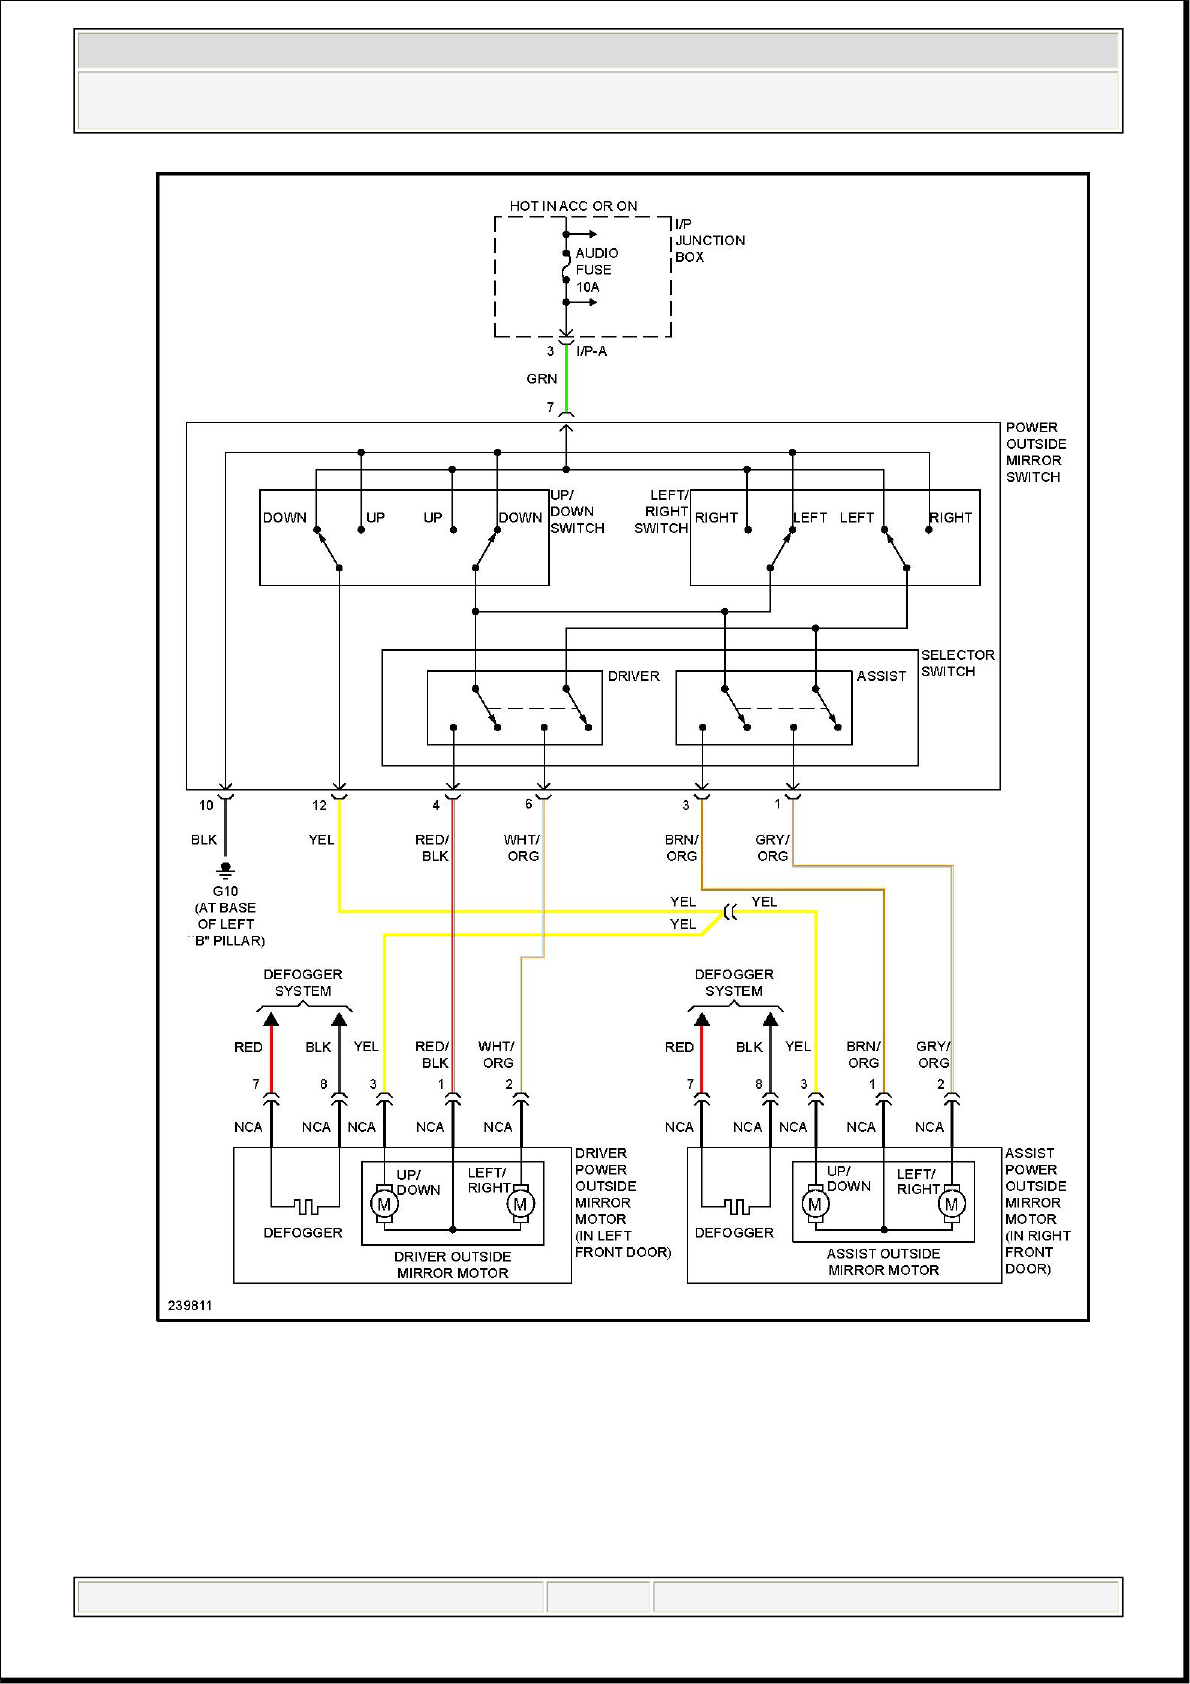 Hyundai Accent 1998 Fuse Box Diagram Wiring Library 2005